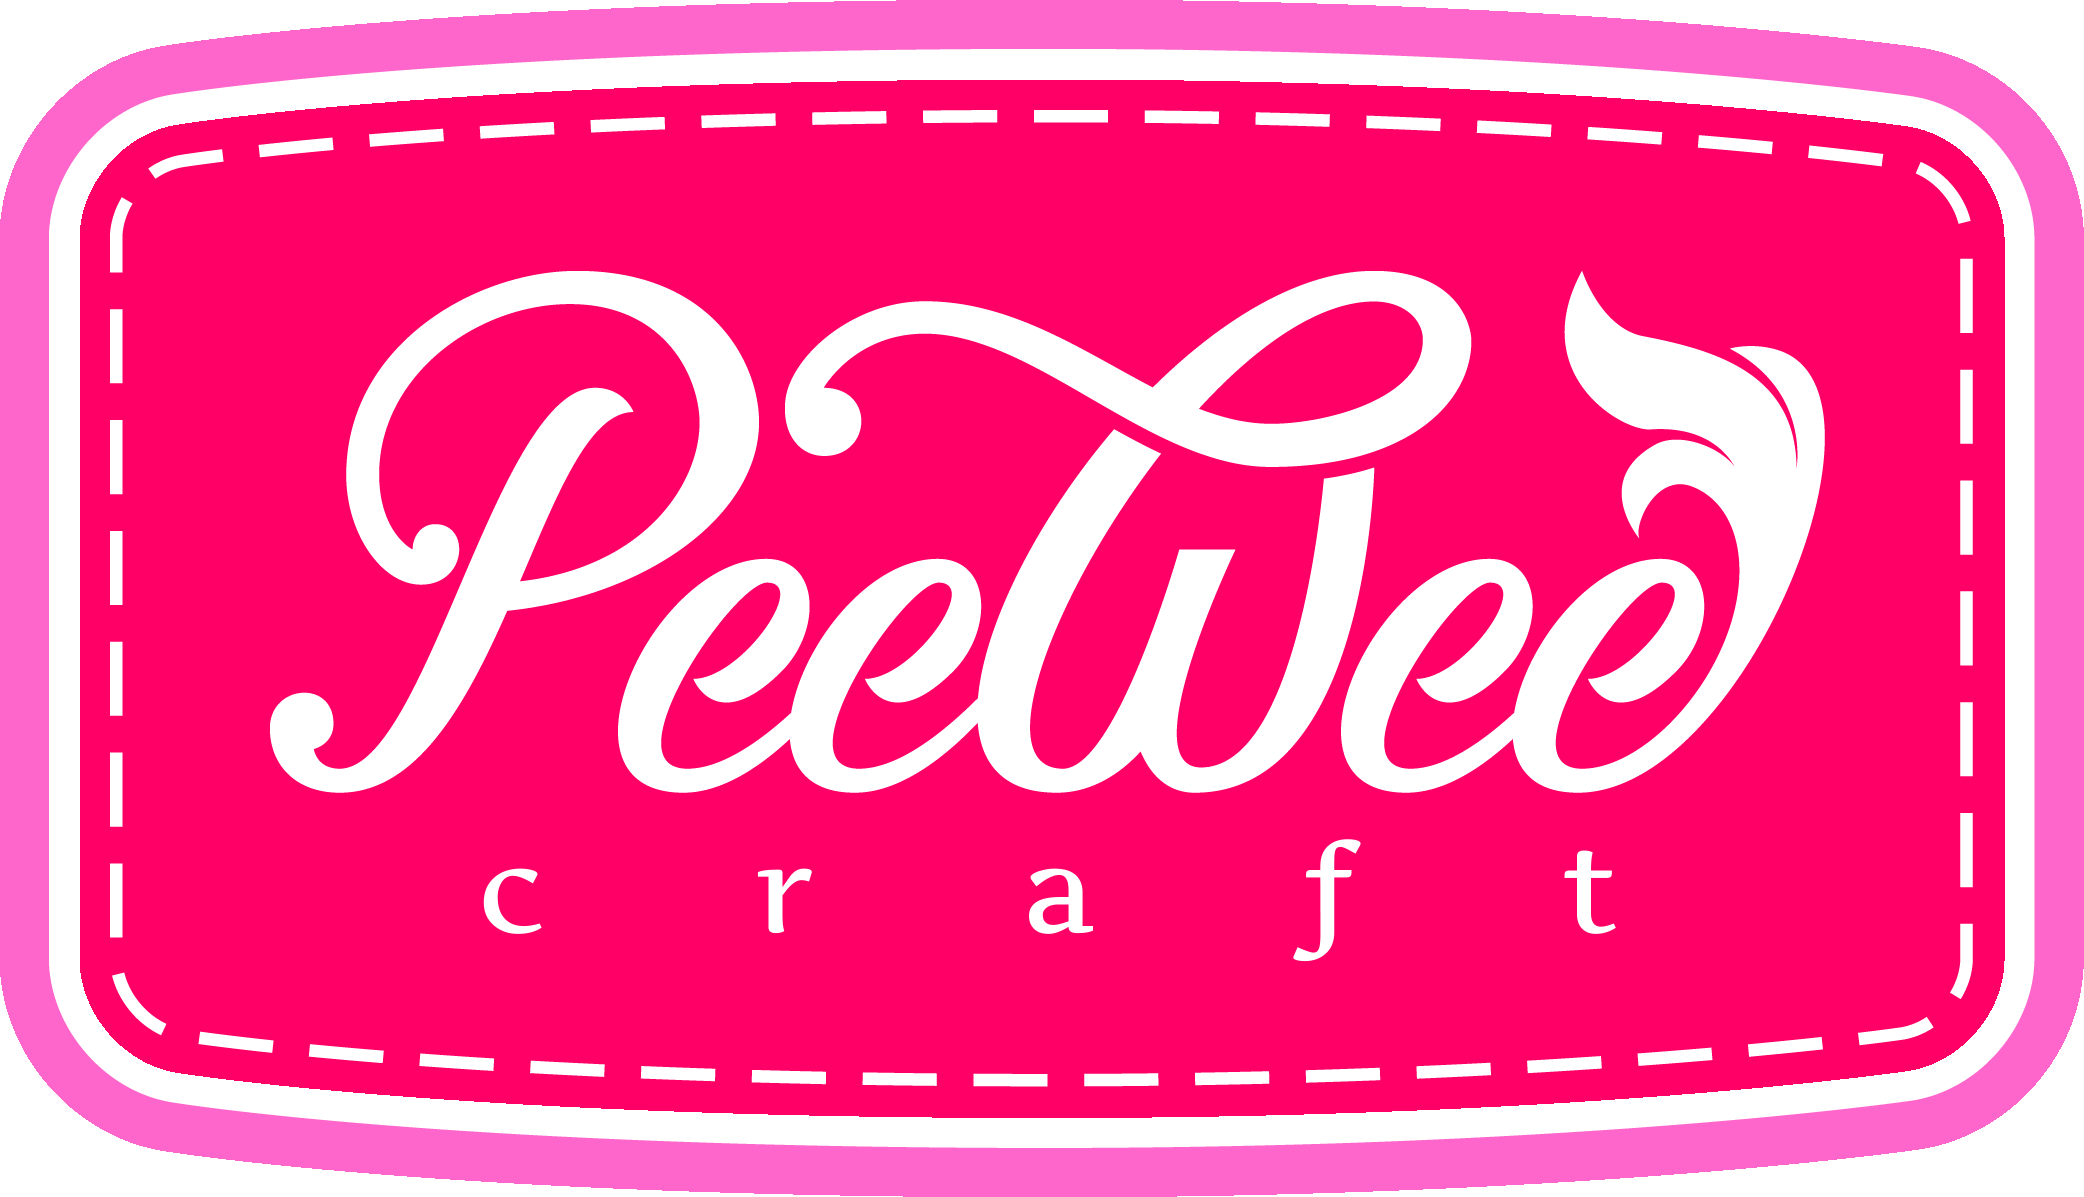 PeeWee CraFT